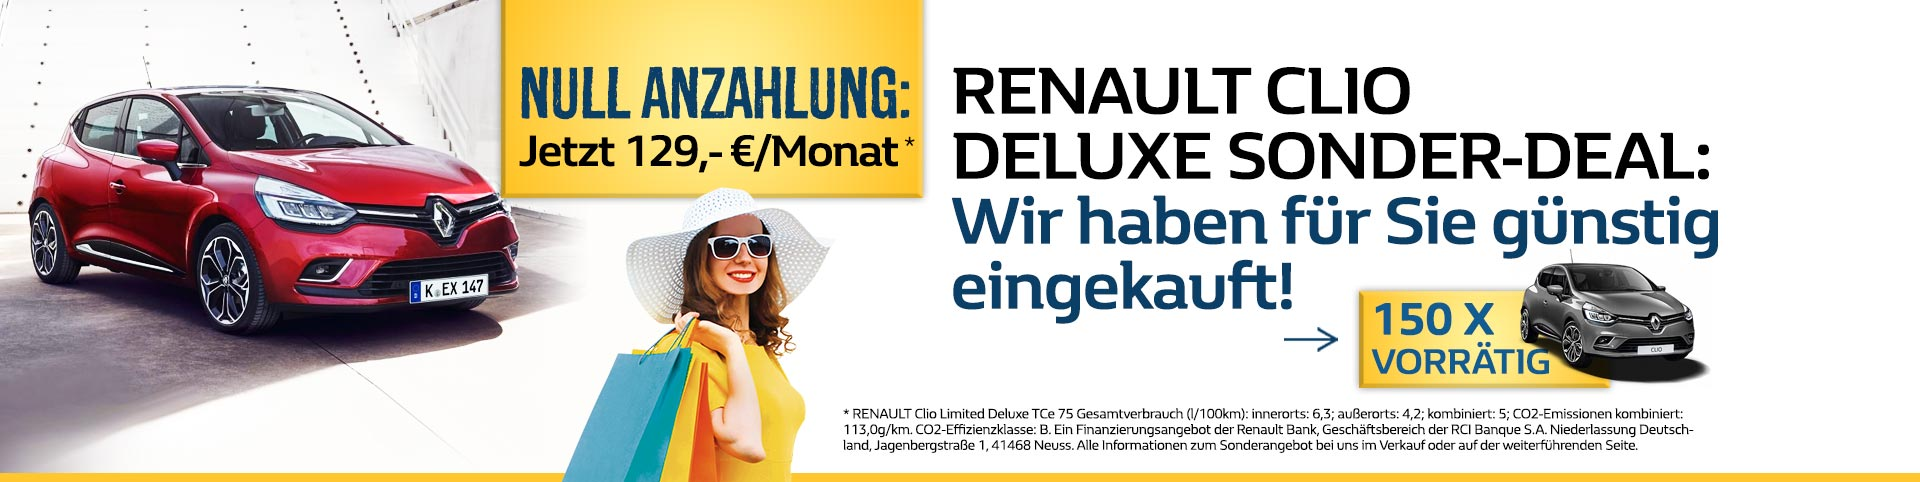 Renault Clio Deluxe Angebote